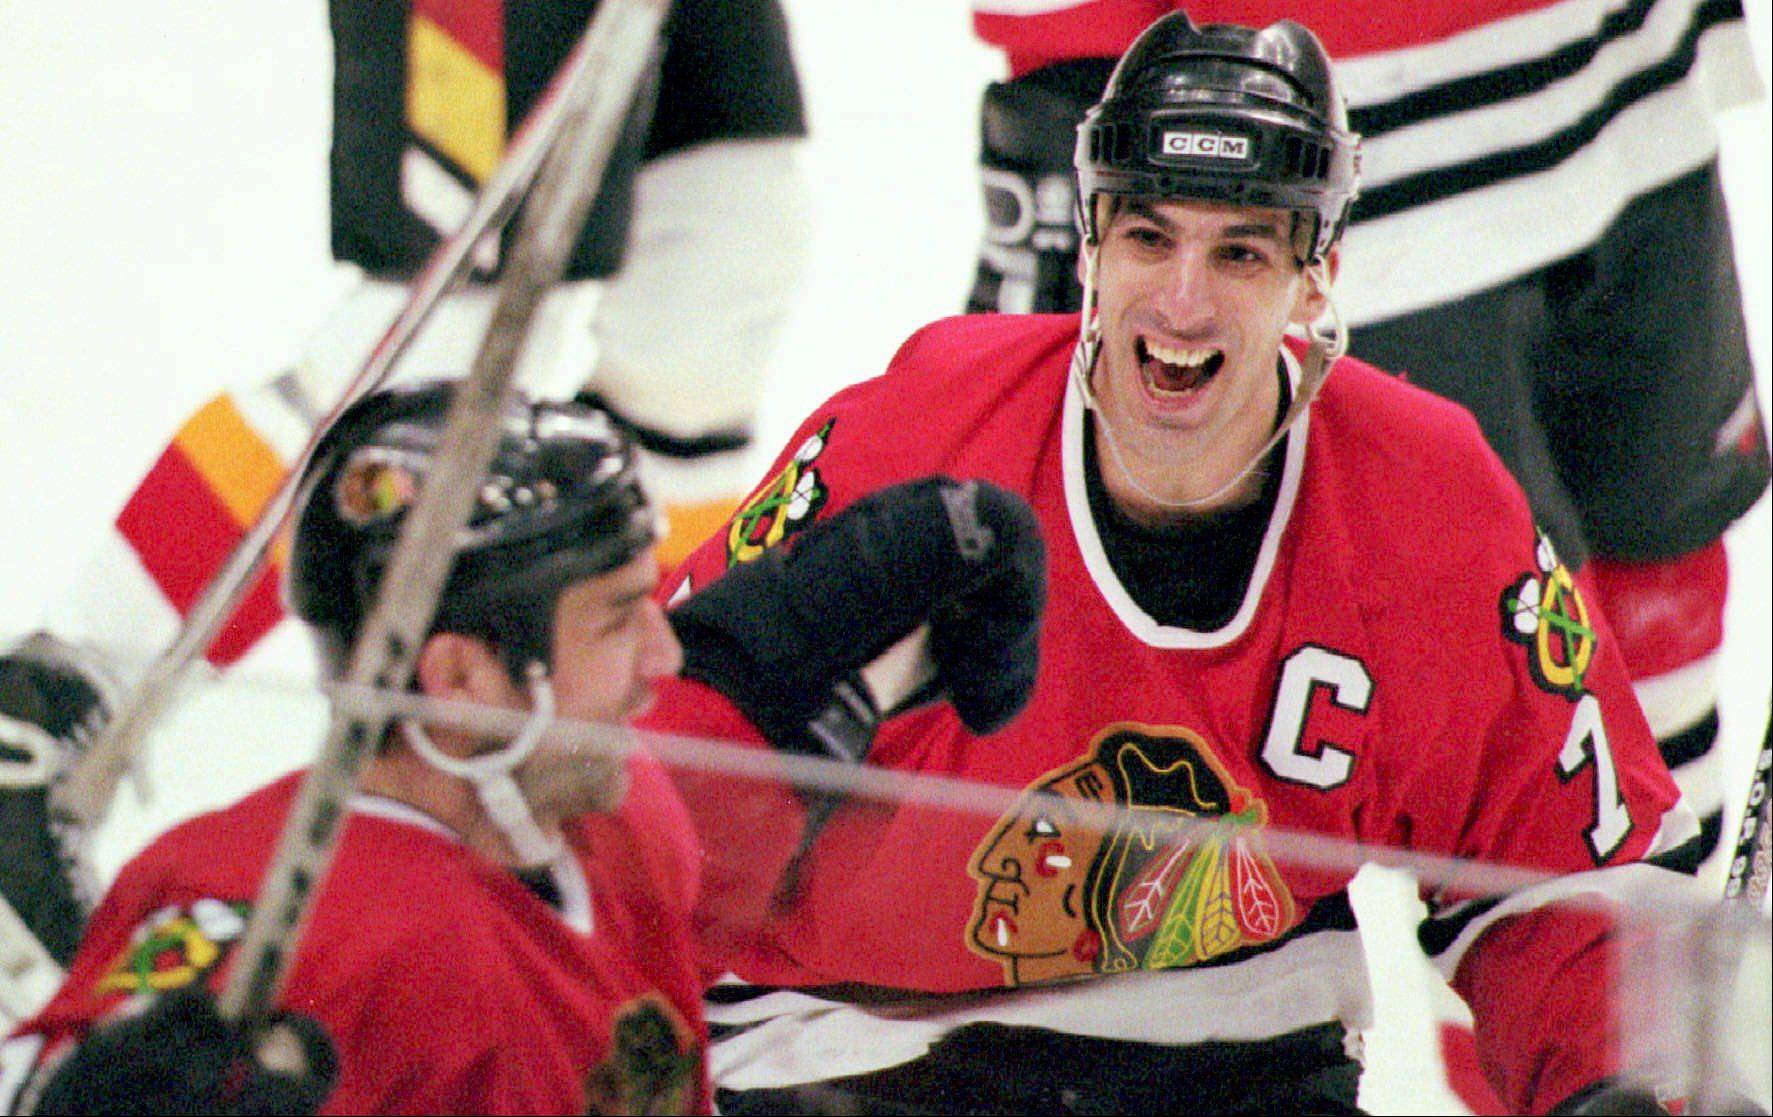 Chicago Blackhawks captain Chris Chelios congratulates teammate Joe Murphy after Murphy scored the game and series winning goal for the Blackhawks against the Calgary Flames in Calgary, Alberta, in this April 24, 1996 file photo.